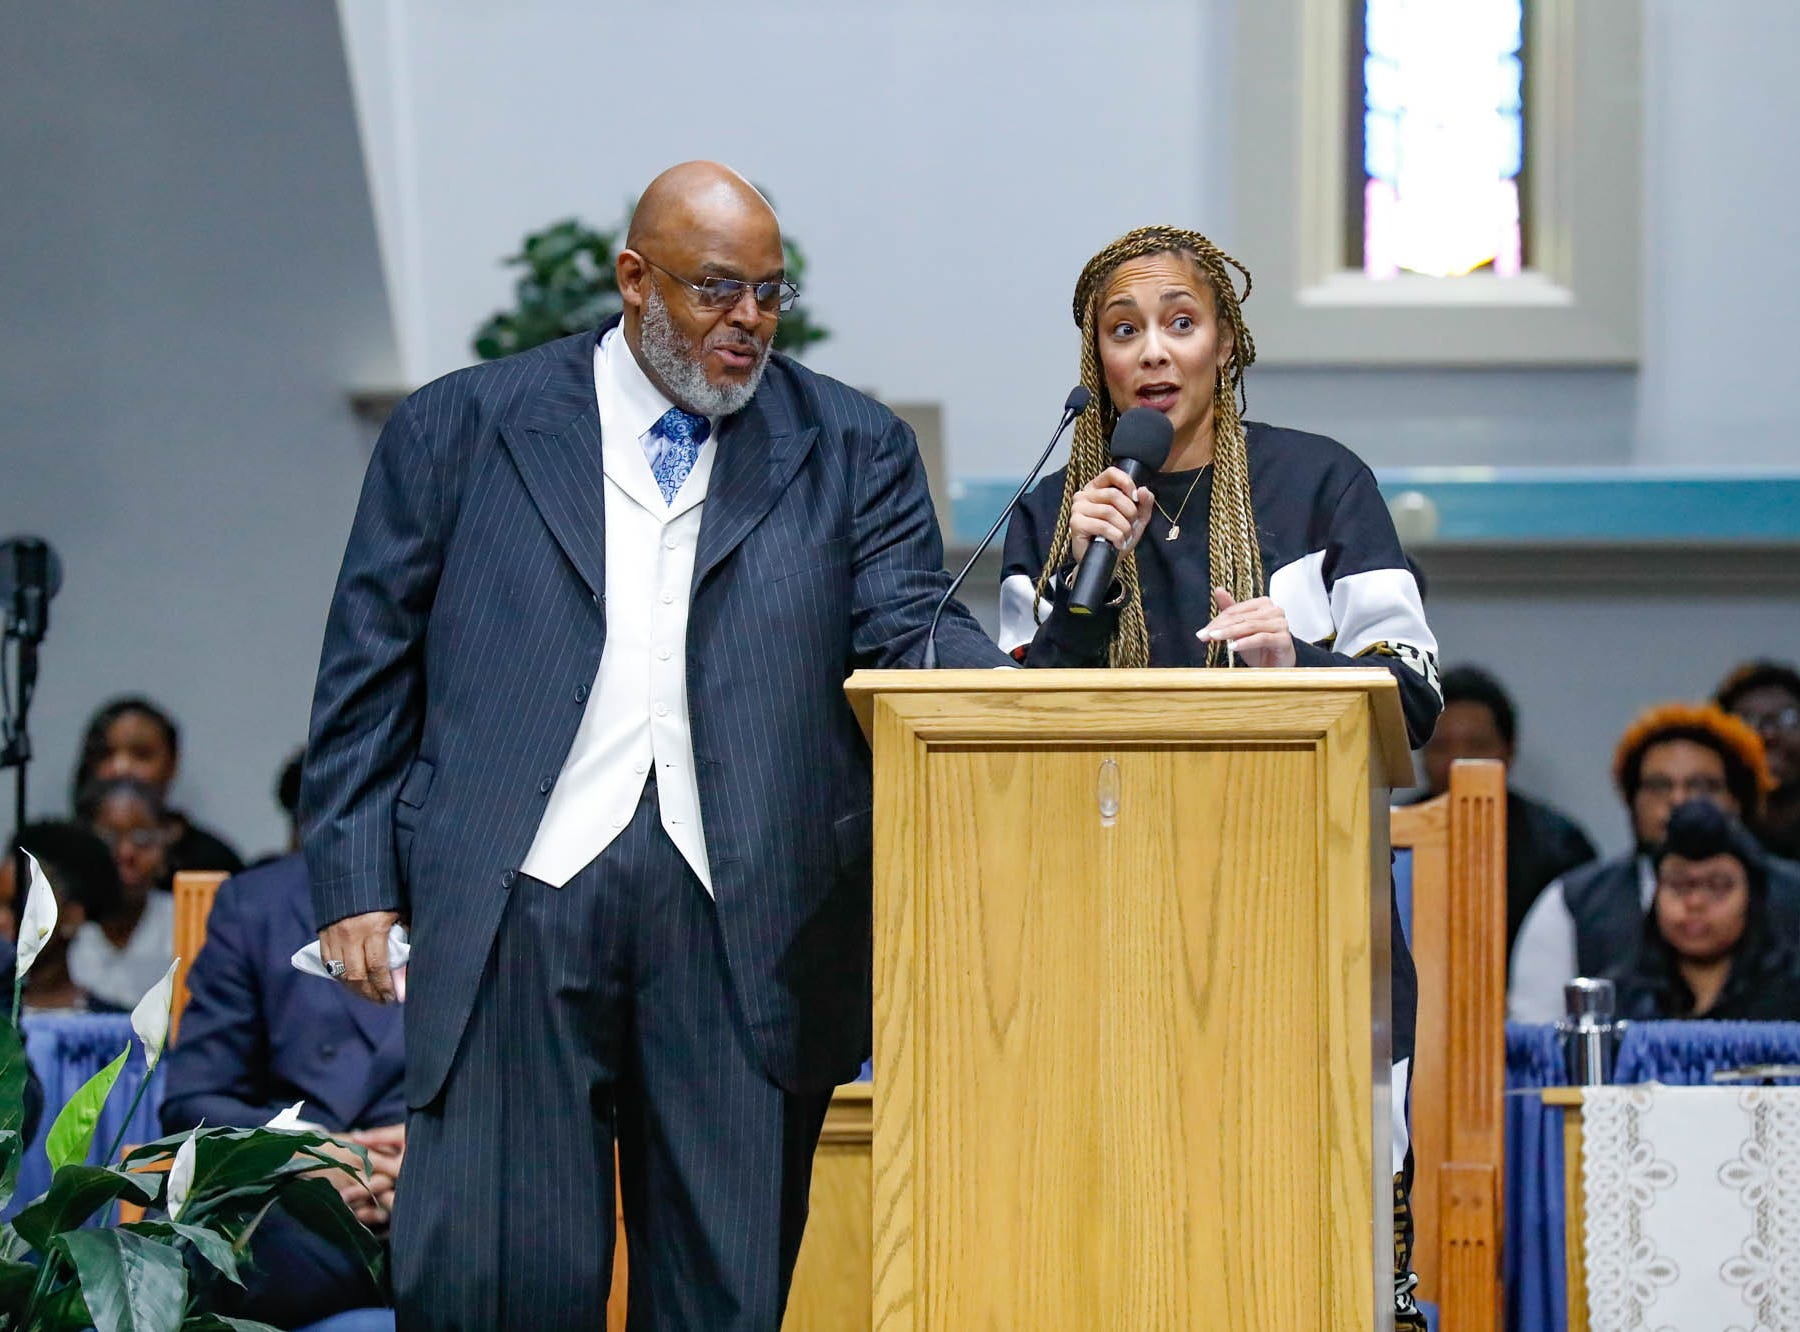 """Rev. Dr. Wayne Moore, left,  introduces keynote speaker and American comedian, actress, disc jockey (DJ), recording artist and radio personality, Amanda Seales, during the annual Steward Speakers Lecture Series event, held at Olivet Missionary Baptist Church in Indianapolis on Thursday, Feb. 21, 2019. This years theme was """"Year of the woman""""."""